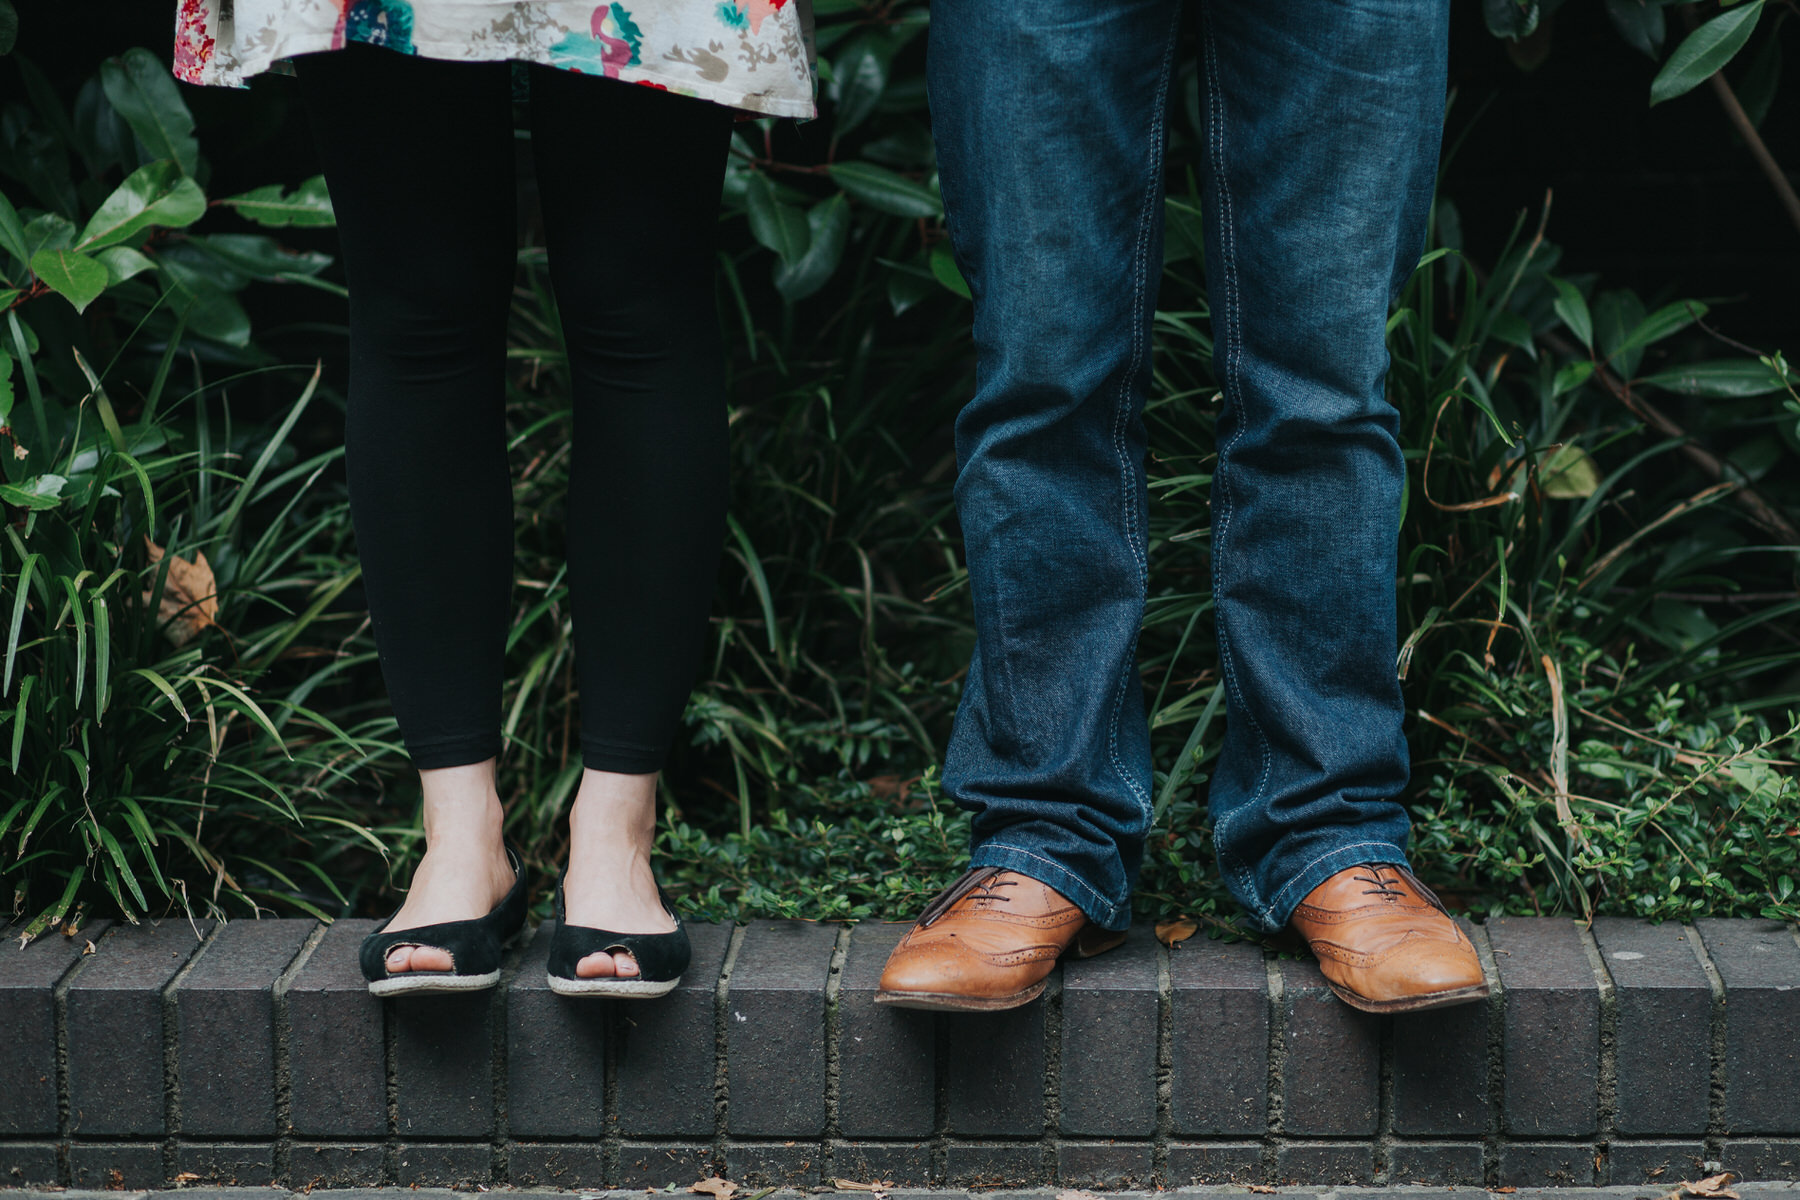 35-cropped photo of couple holding hands.jpg